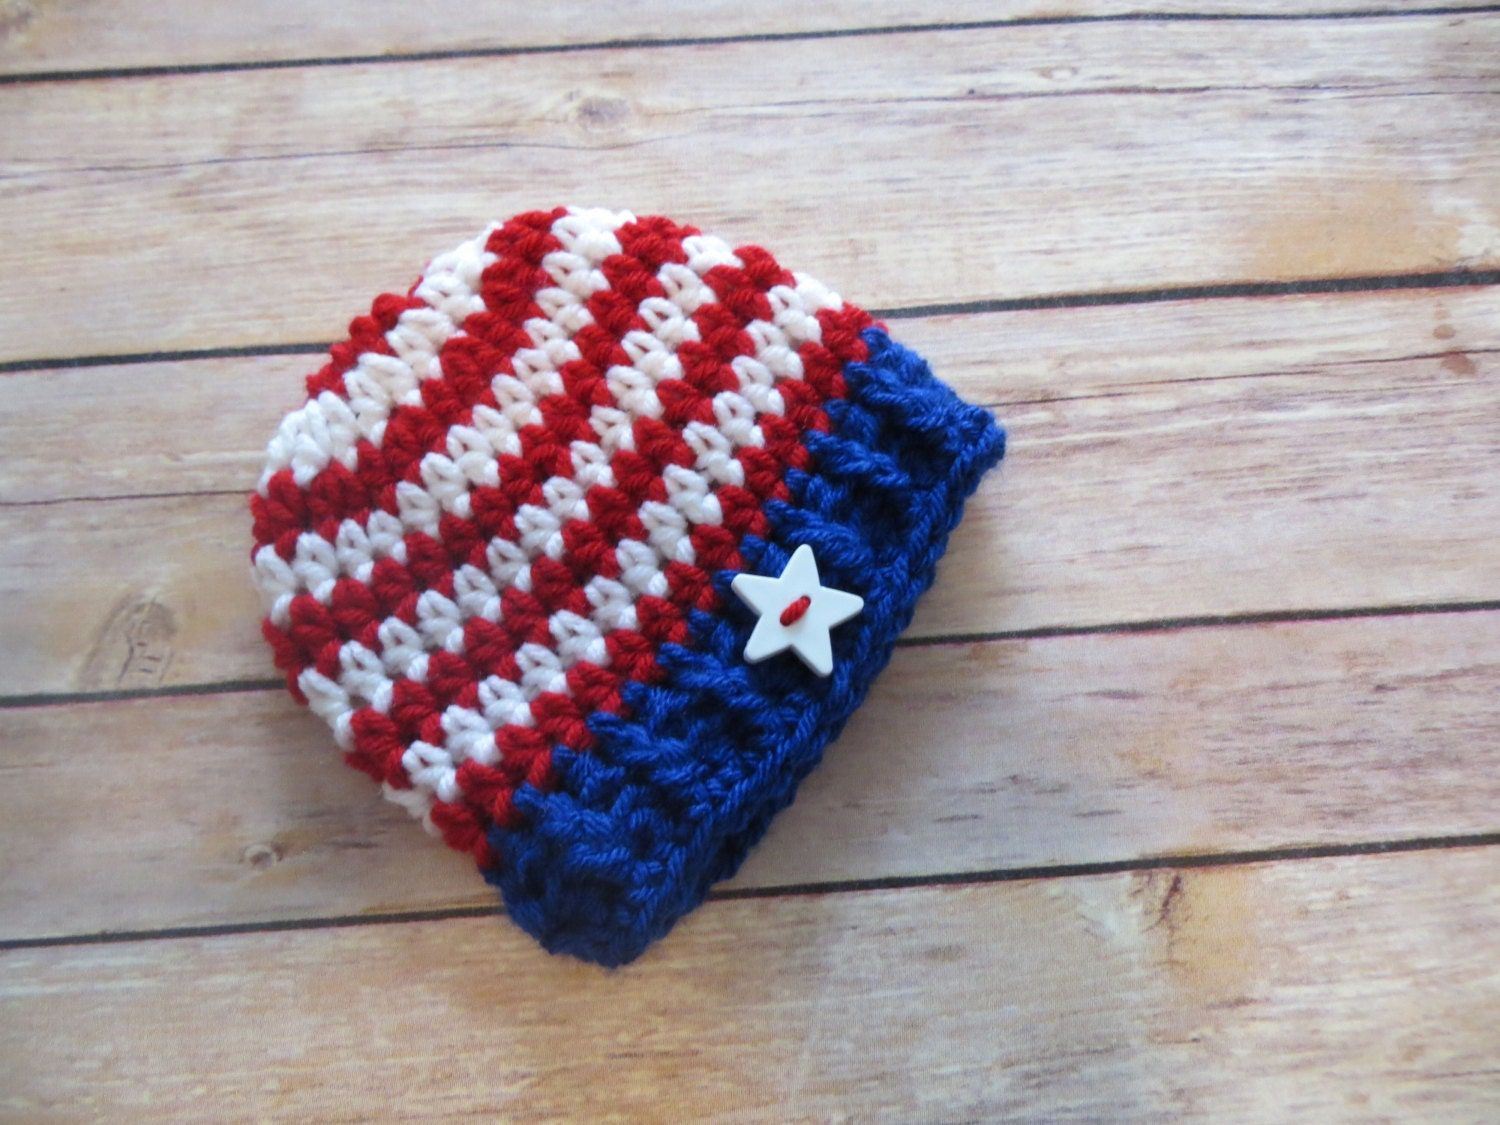 Crochet patriotic hat, bringing home baby hat, July 4th Hat, Shower Gift, Photo Props, preemie to toddler, armed forces patriotic hat